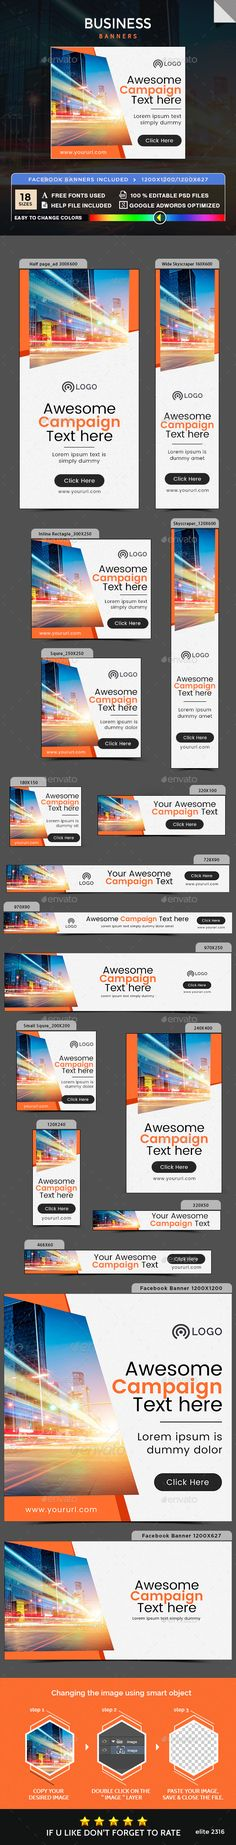 Business Banners — Photoshop PSD #banner pack #marketing • Available here → https://graphicriver.net/item/business-banners/20056266?ref=pxcr